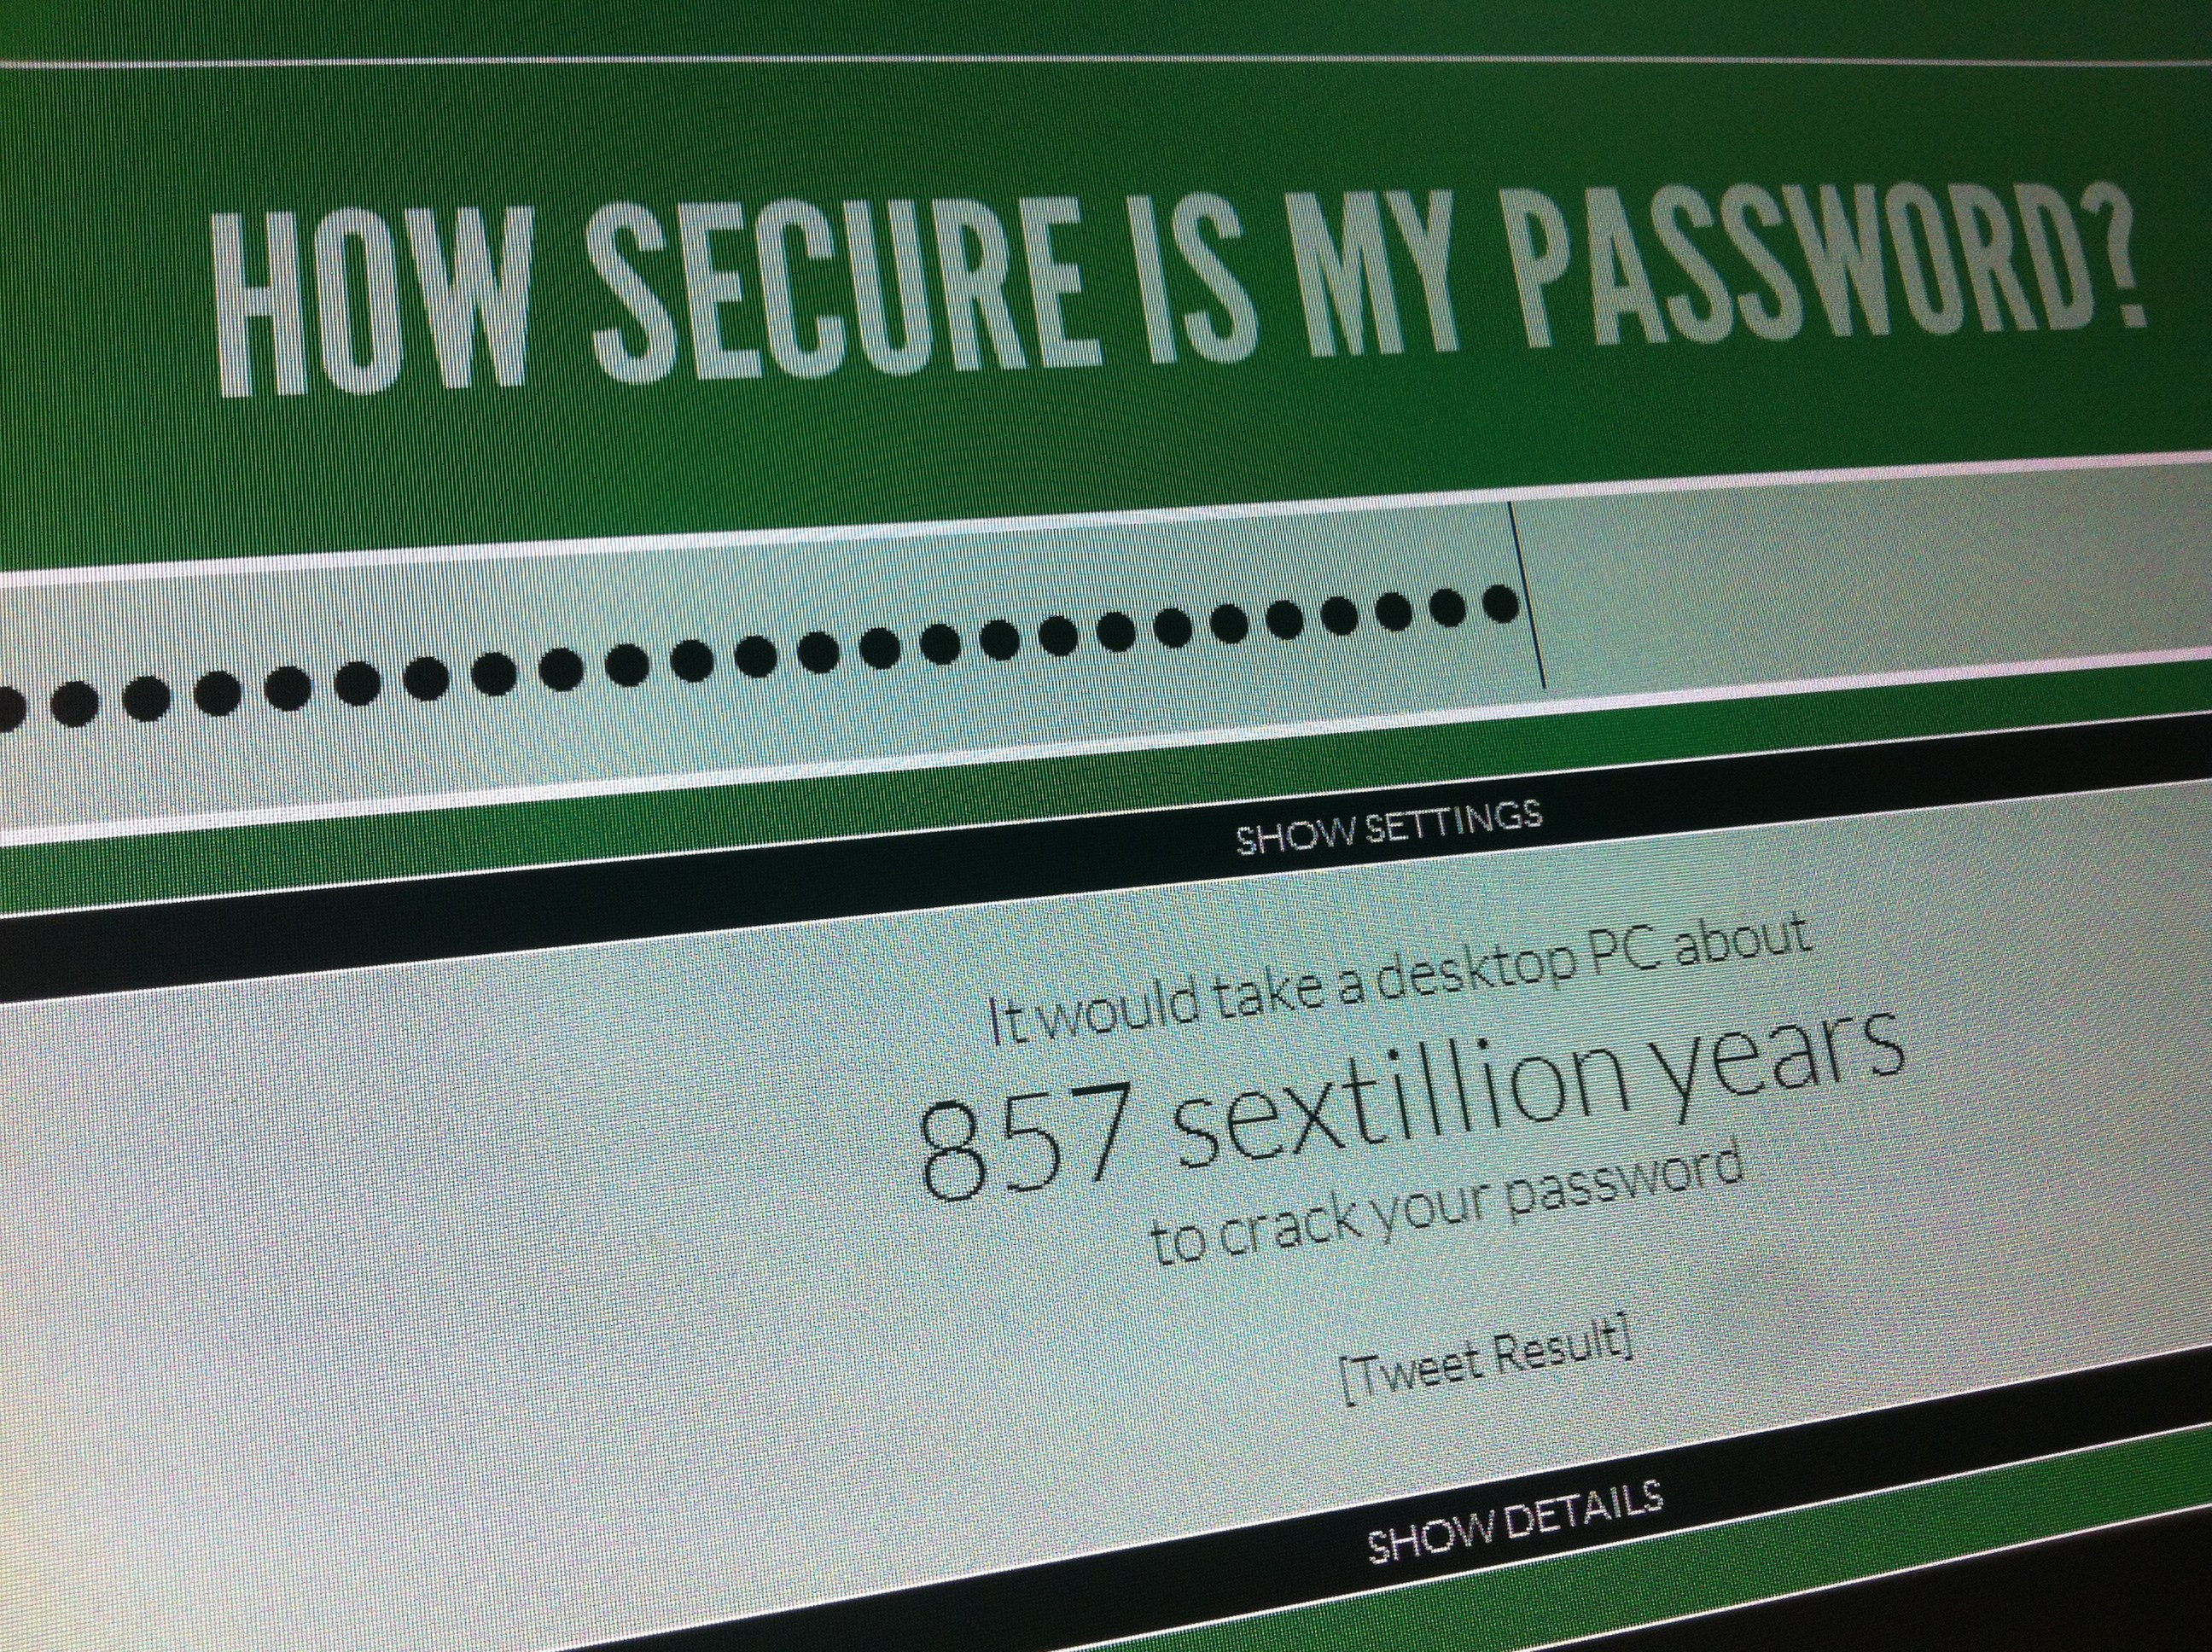 How Secure Is Your Password? - decoding galvindecoding galvin